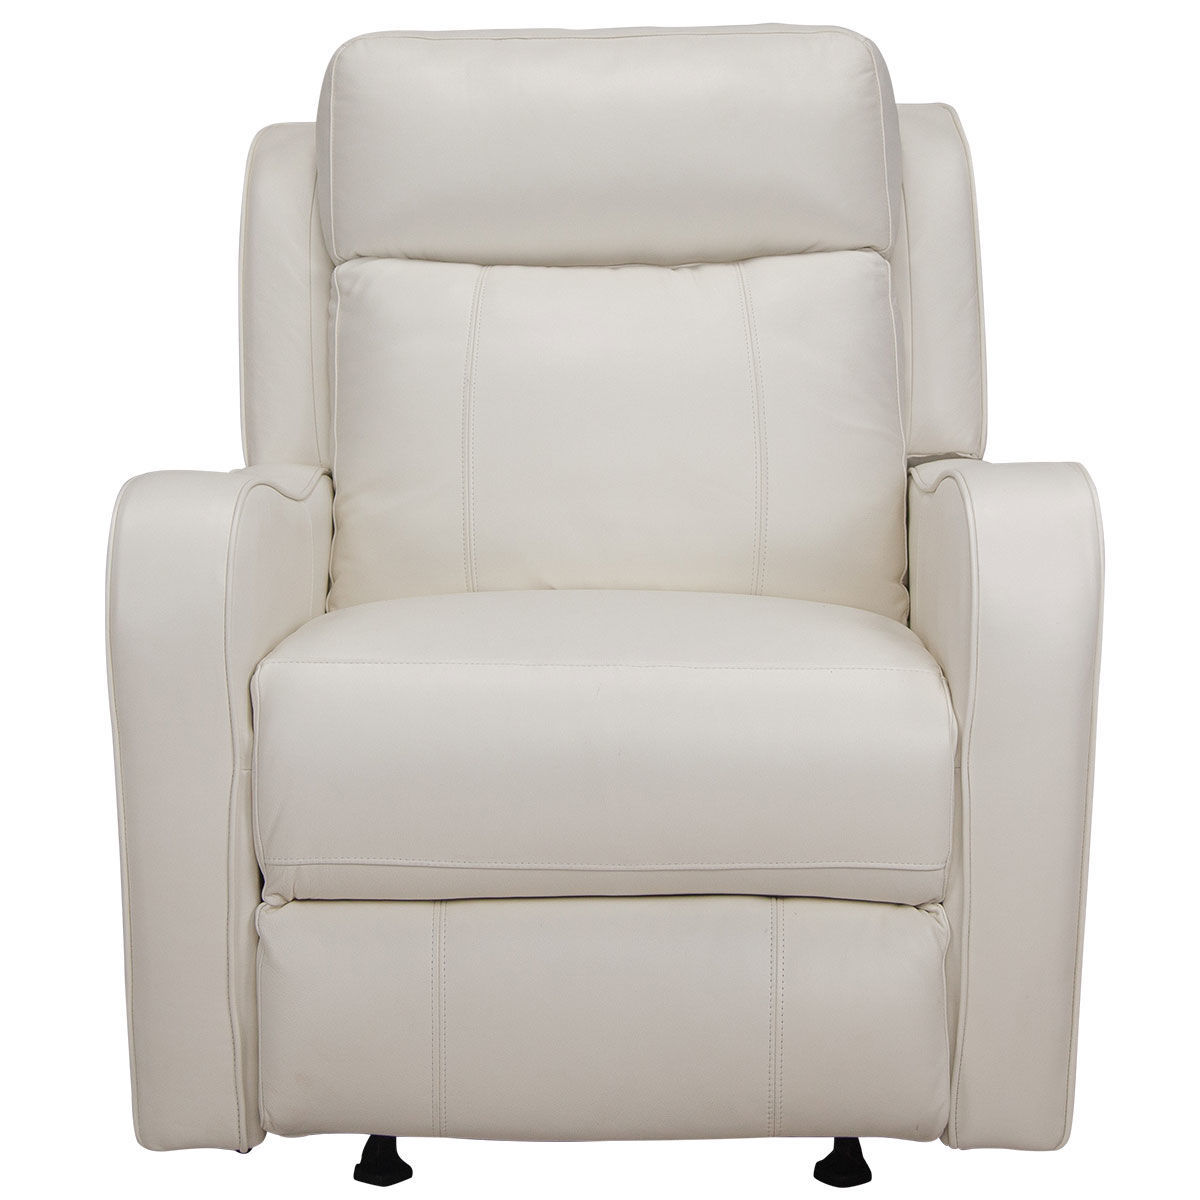 Picture of GERTRUDE WHITE RECLINER W/PHR